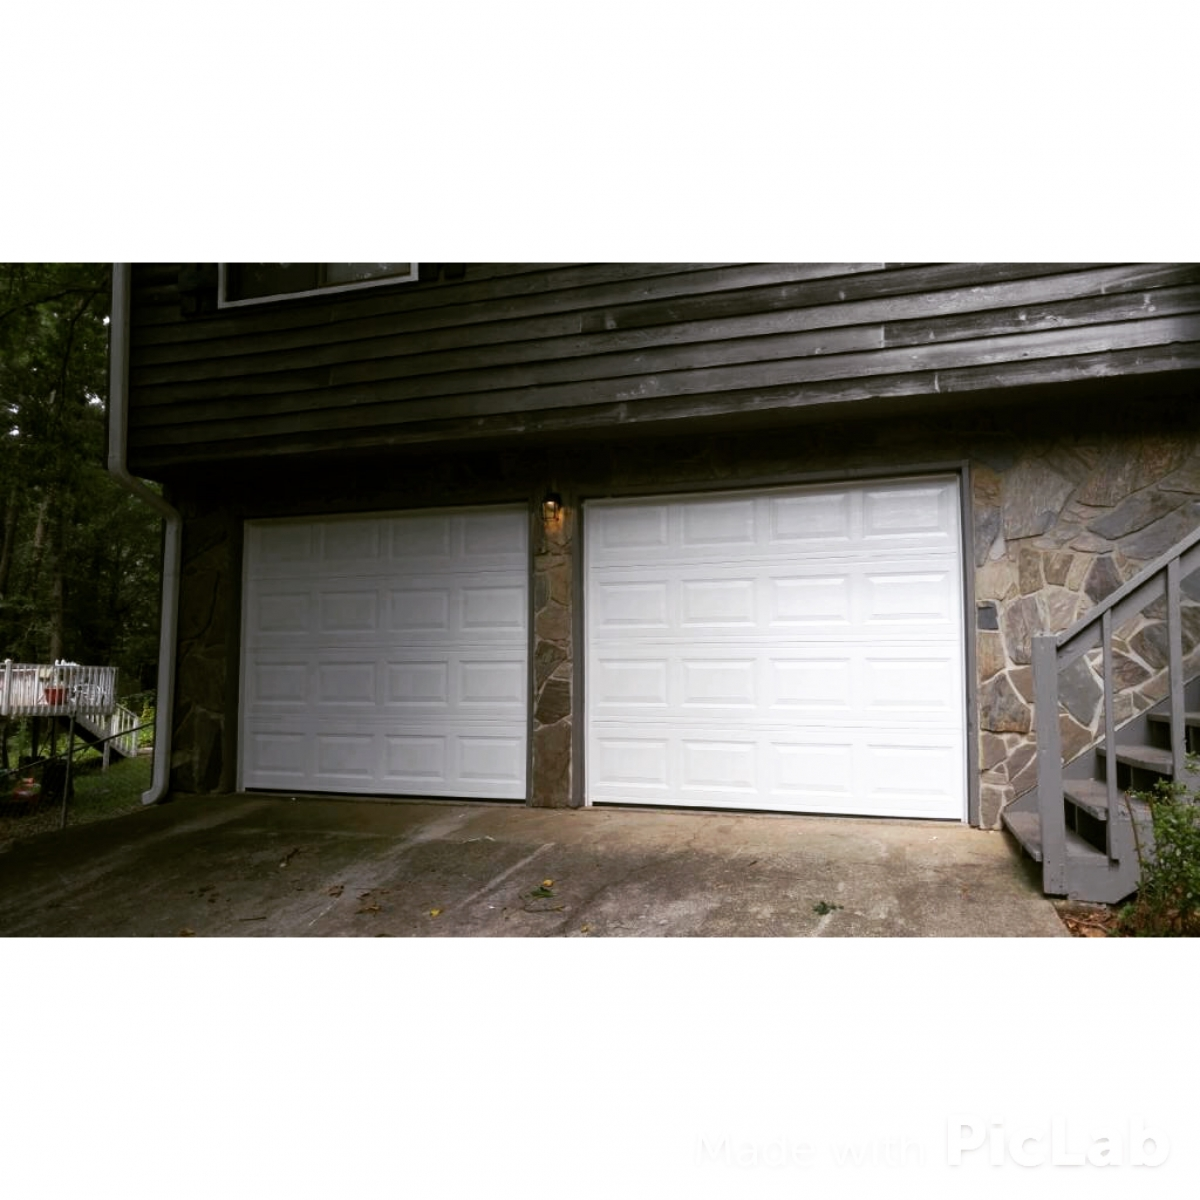 Garage door repair lawrenceville georgia ppi blog for Garage door repair lawrenceville